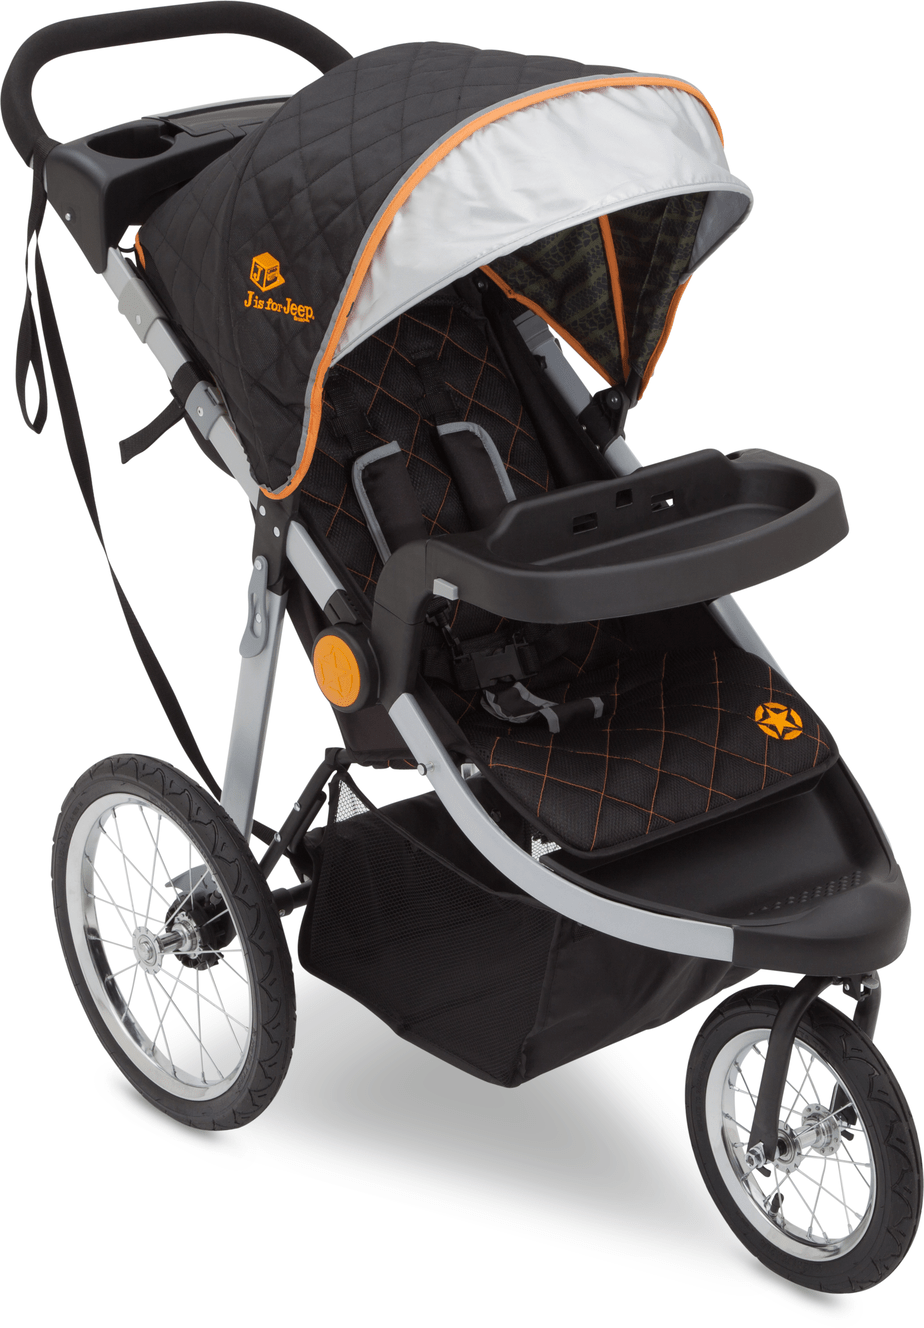 Delta's J is for Jeep Stroller Recalls